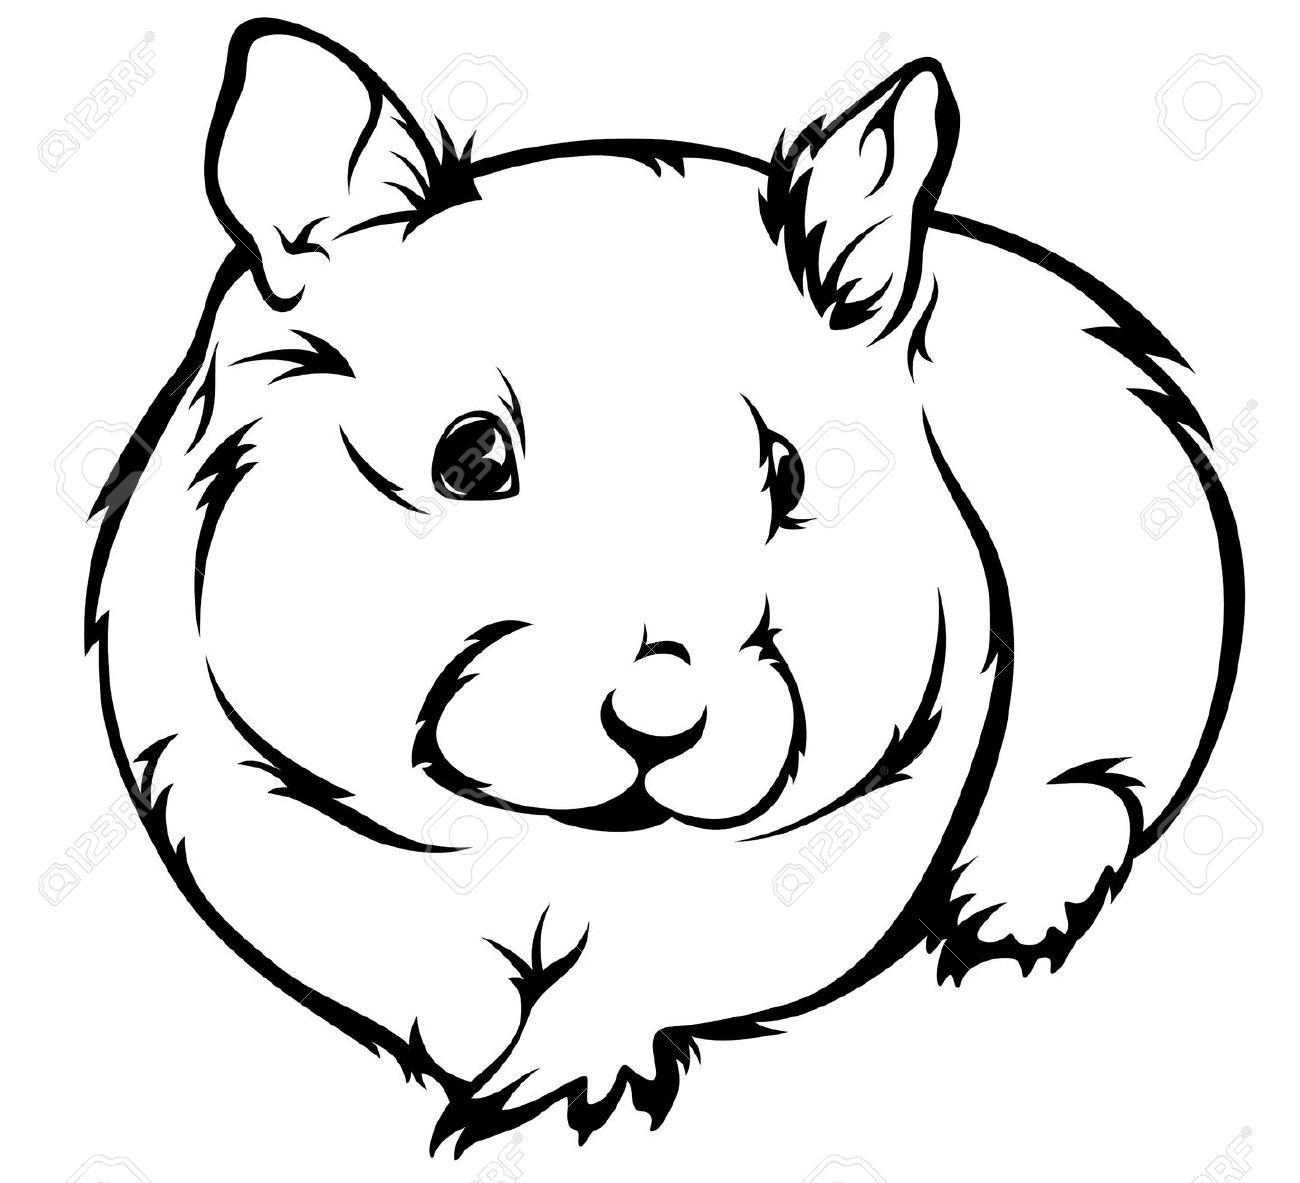 Hamster Clip Art Black And White - Awesome Graphic Library •